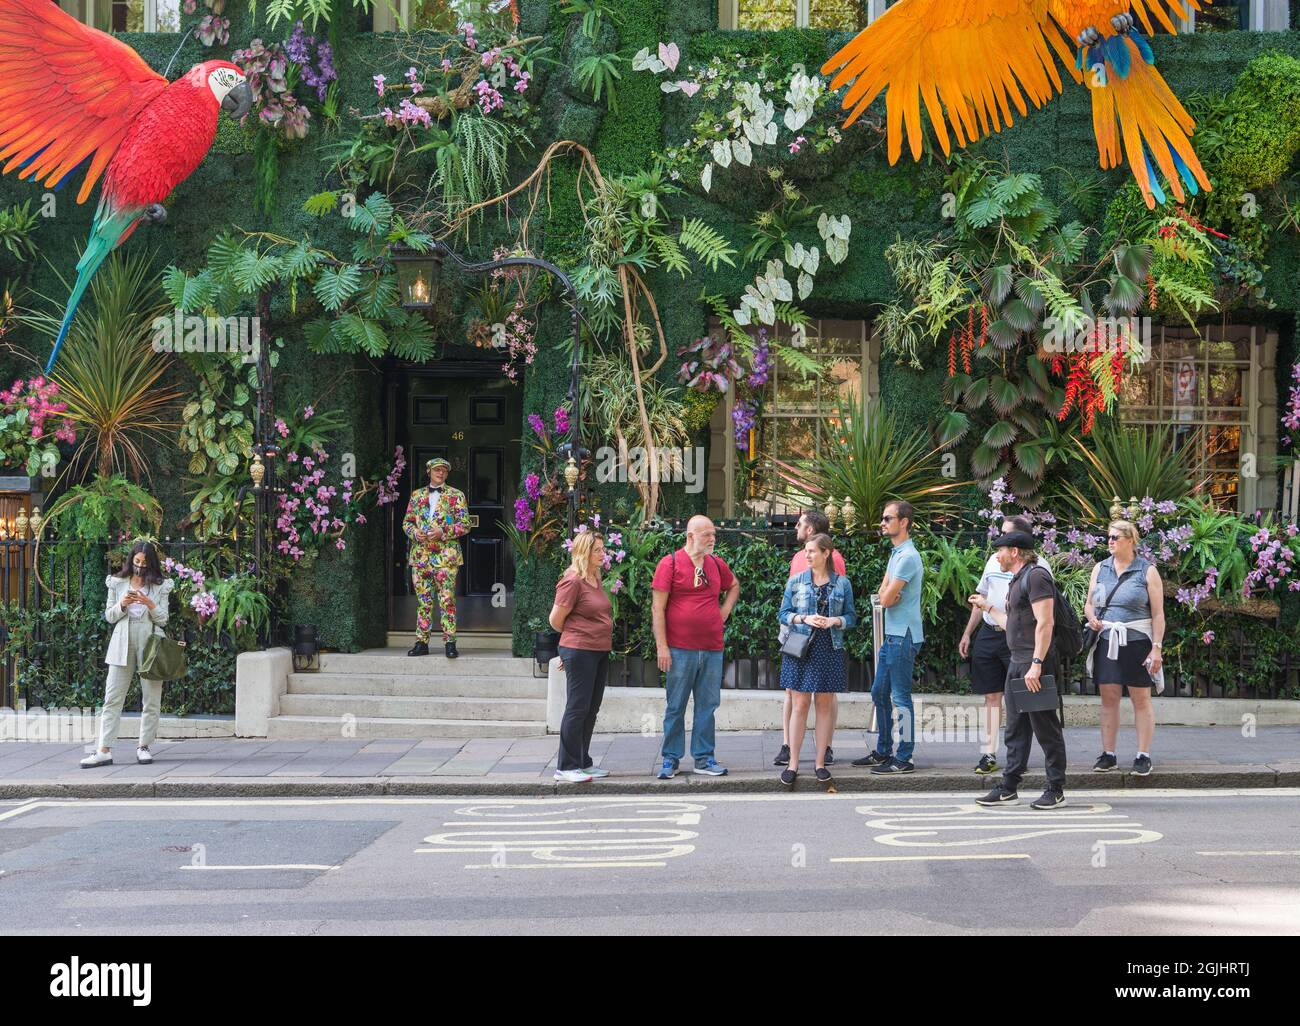 tour-guide-and-tour-group-stand-on-the-pavement-outside-the-colourful-jungle-theme-decorated-frontage-of-annabels-club-berkeley-square-london-uk-2GJHRTJ.jpg